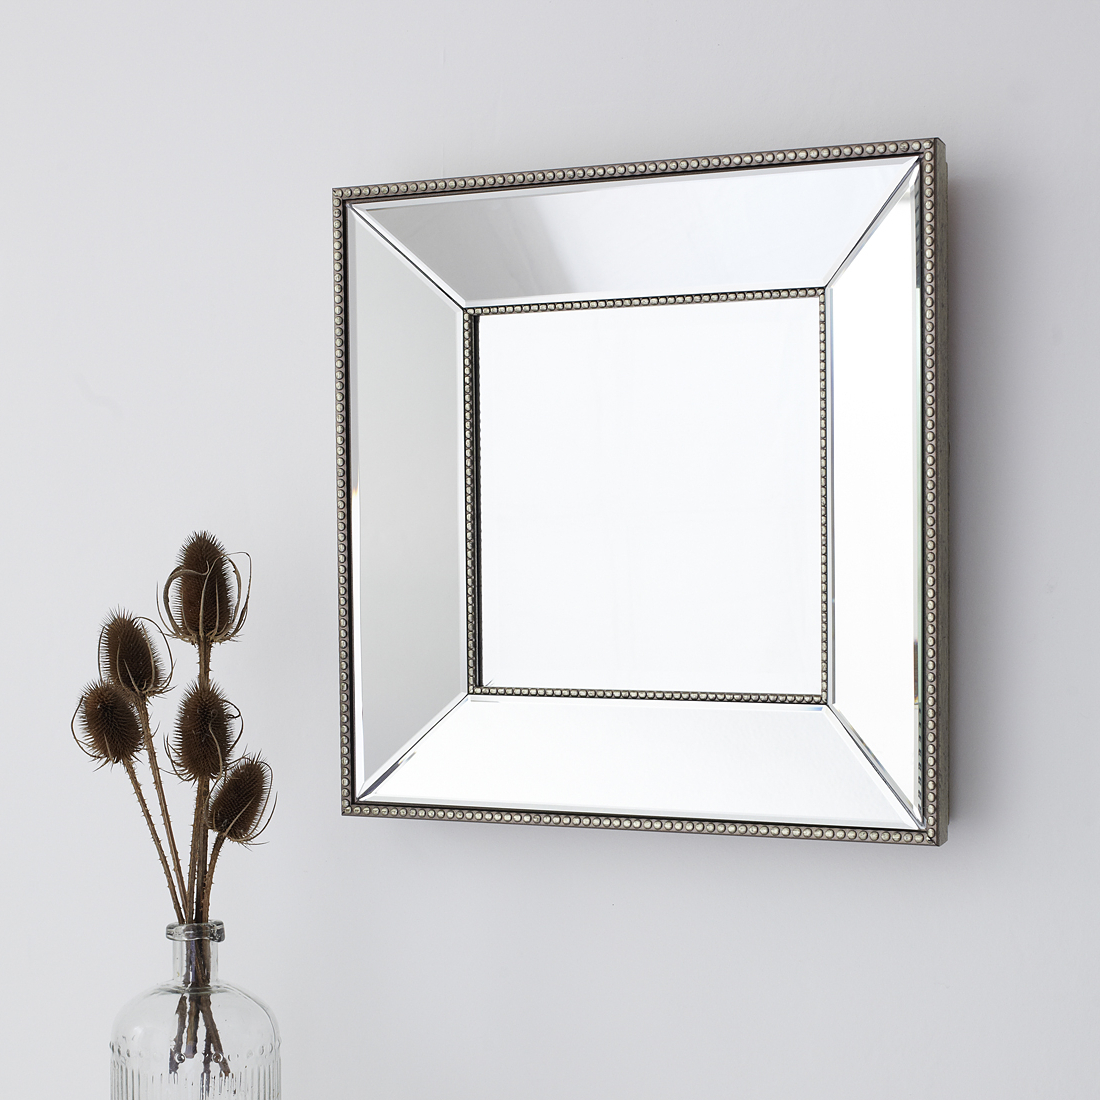 Beaded Wall Mirrors In Well Known Small Beaded Square Wall Mirror (View 12 of 20)